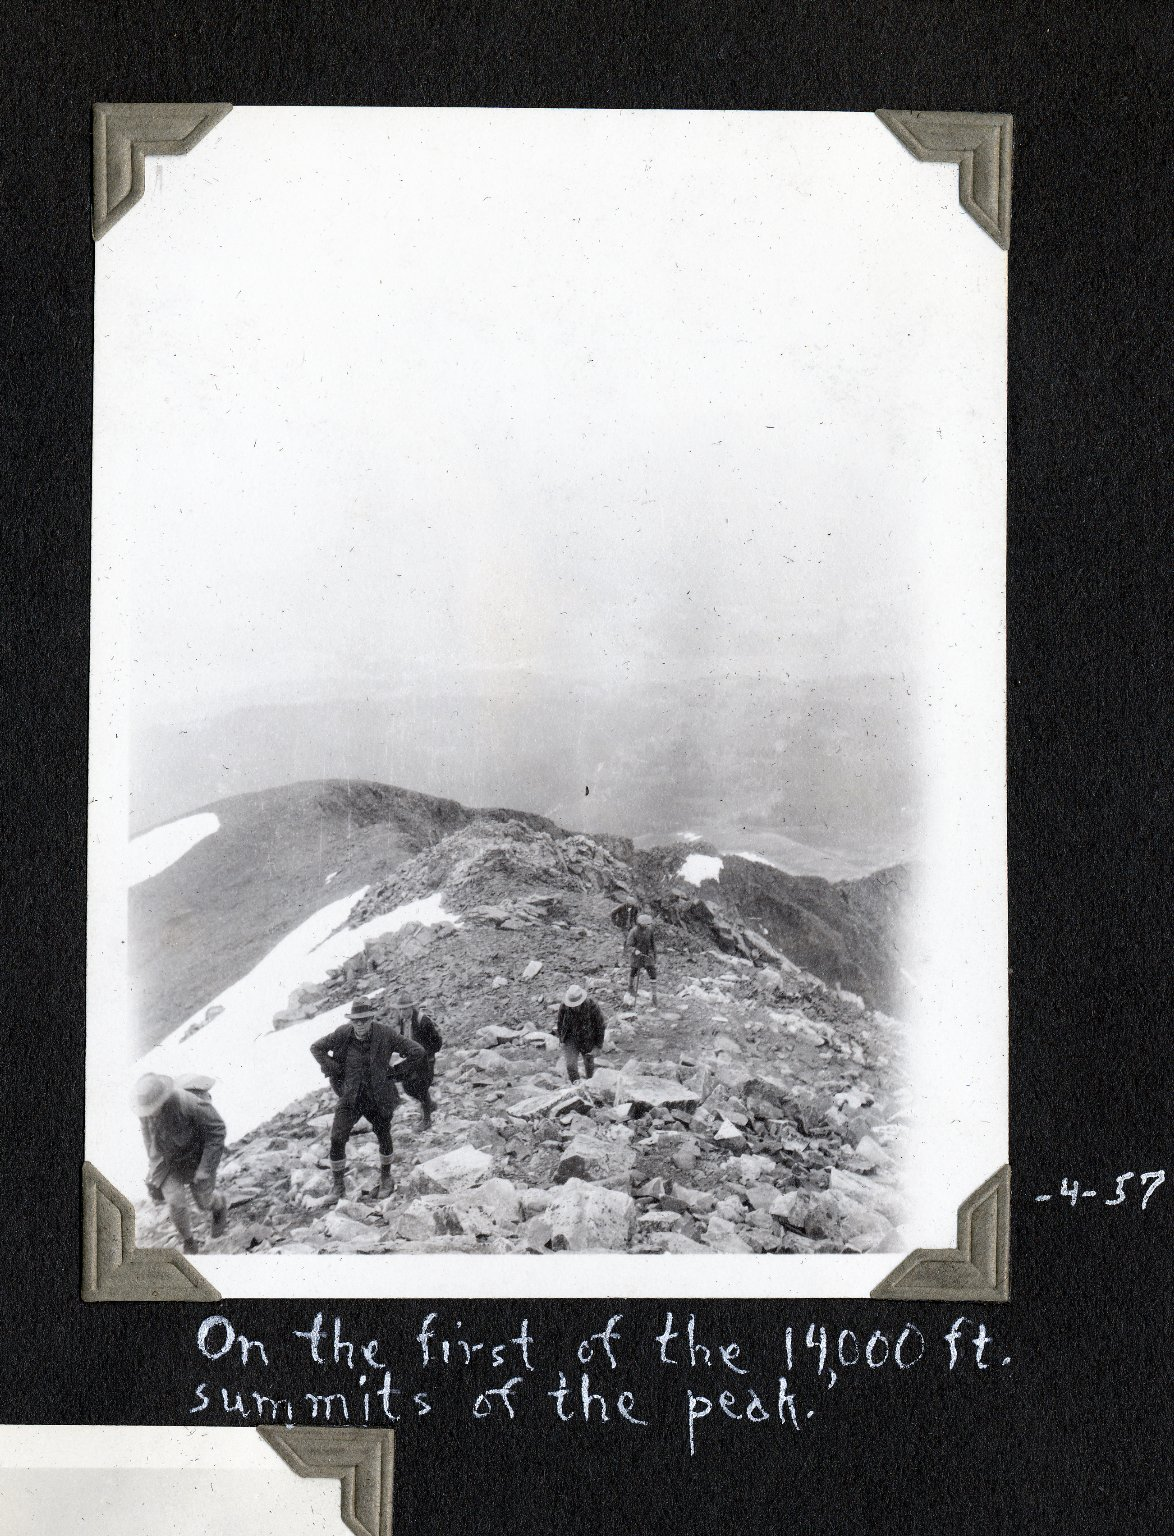 On the first summit of Mount Wilson